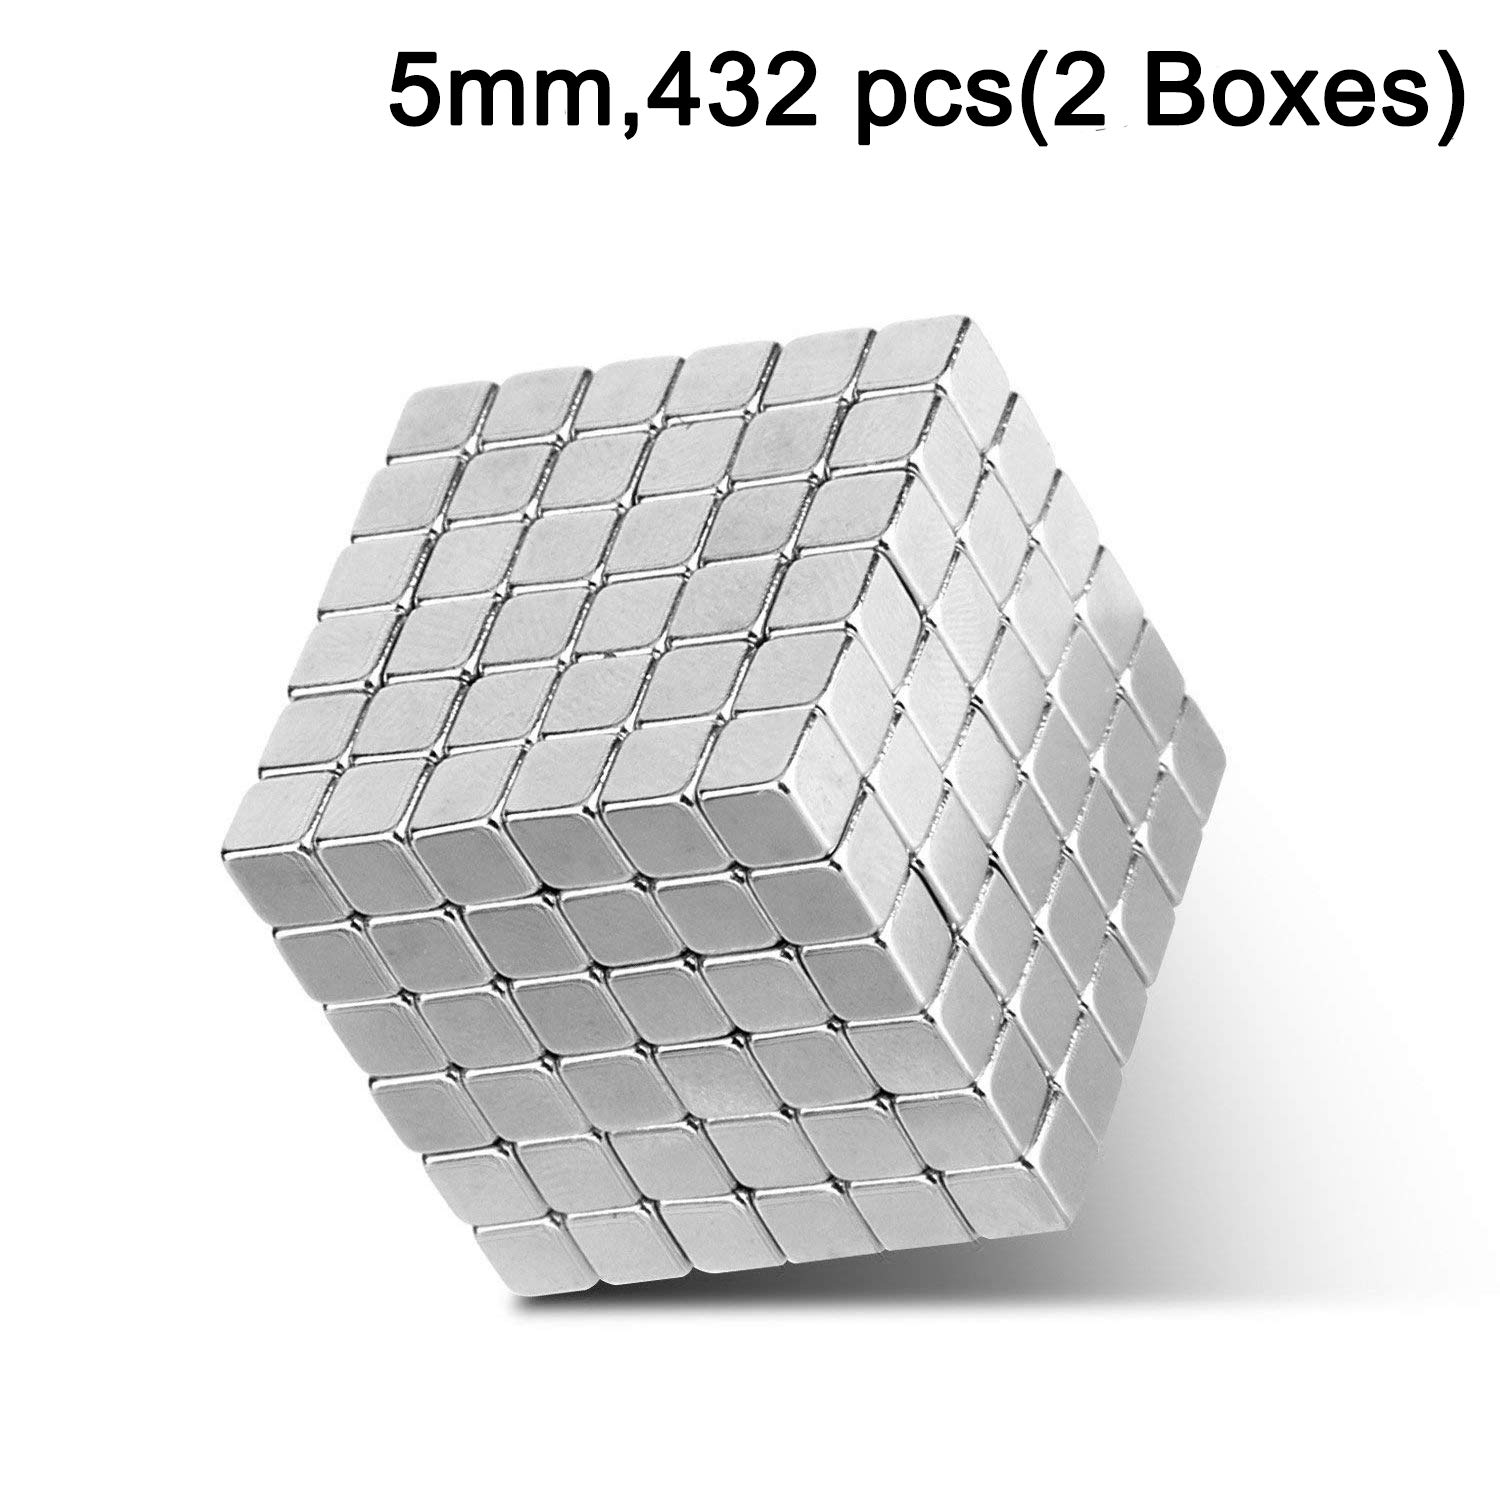 5mm Magnetic Fidget Blocks Square Ball, EVERMARKET Sculpture Toy for Intelligence Development, Stress Relief, a Great Toy for Office, Work, Home, and Everywhere - with Metal Gift box (432 pcs,2 boxes)